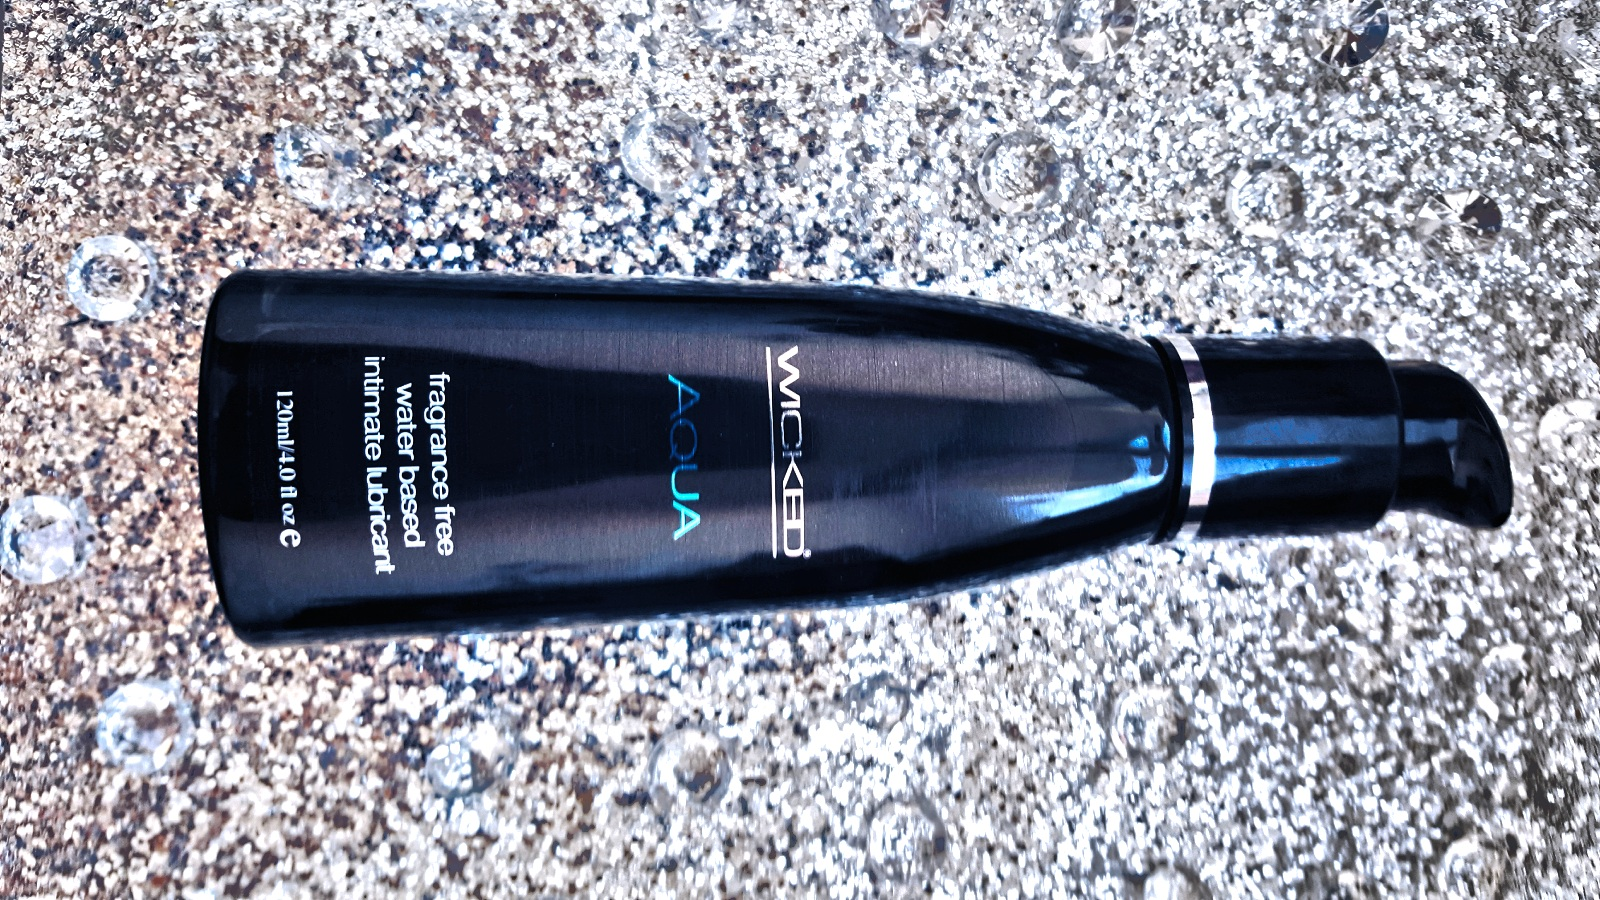 Wicked Aqua Water Based Lubricant Review